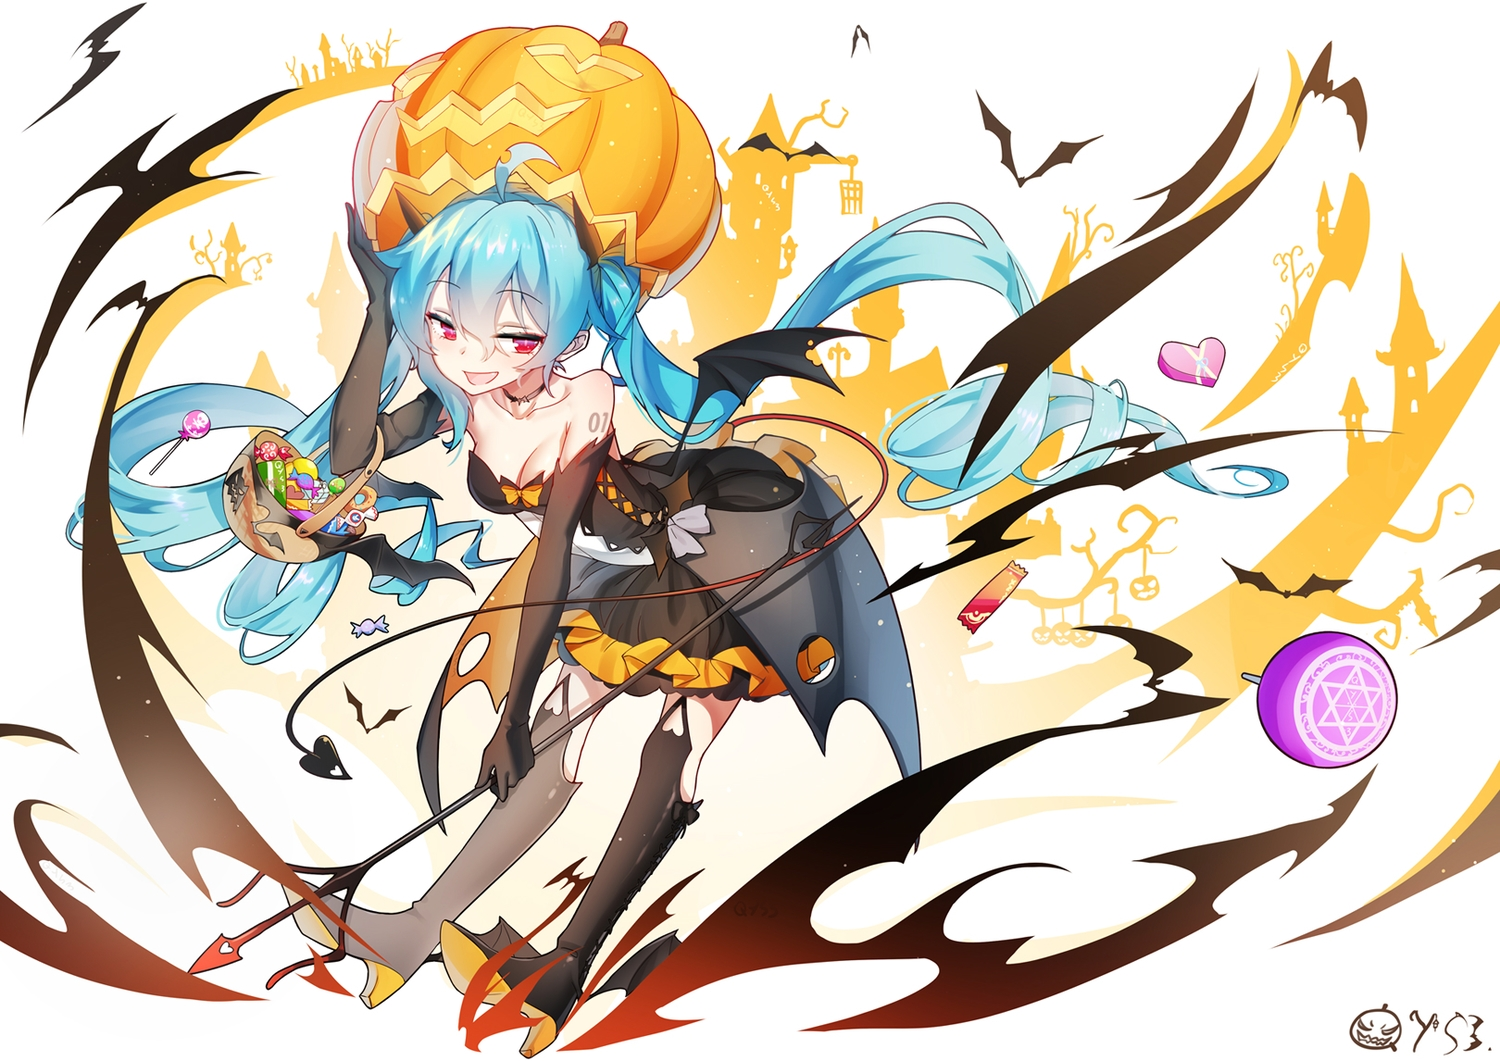 animal aqua_hair bai_yemeng bat boots bow breasts candy choker cleavage dress elbow_gloves gloves halloween hatsune_miku heart long_hair pumpkin red_eyes signed spear twintails vocaloid weapon wings